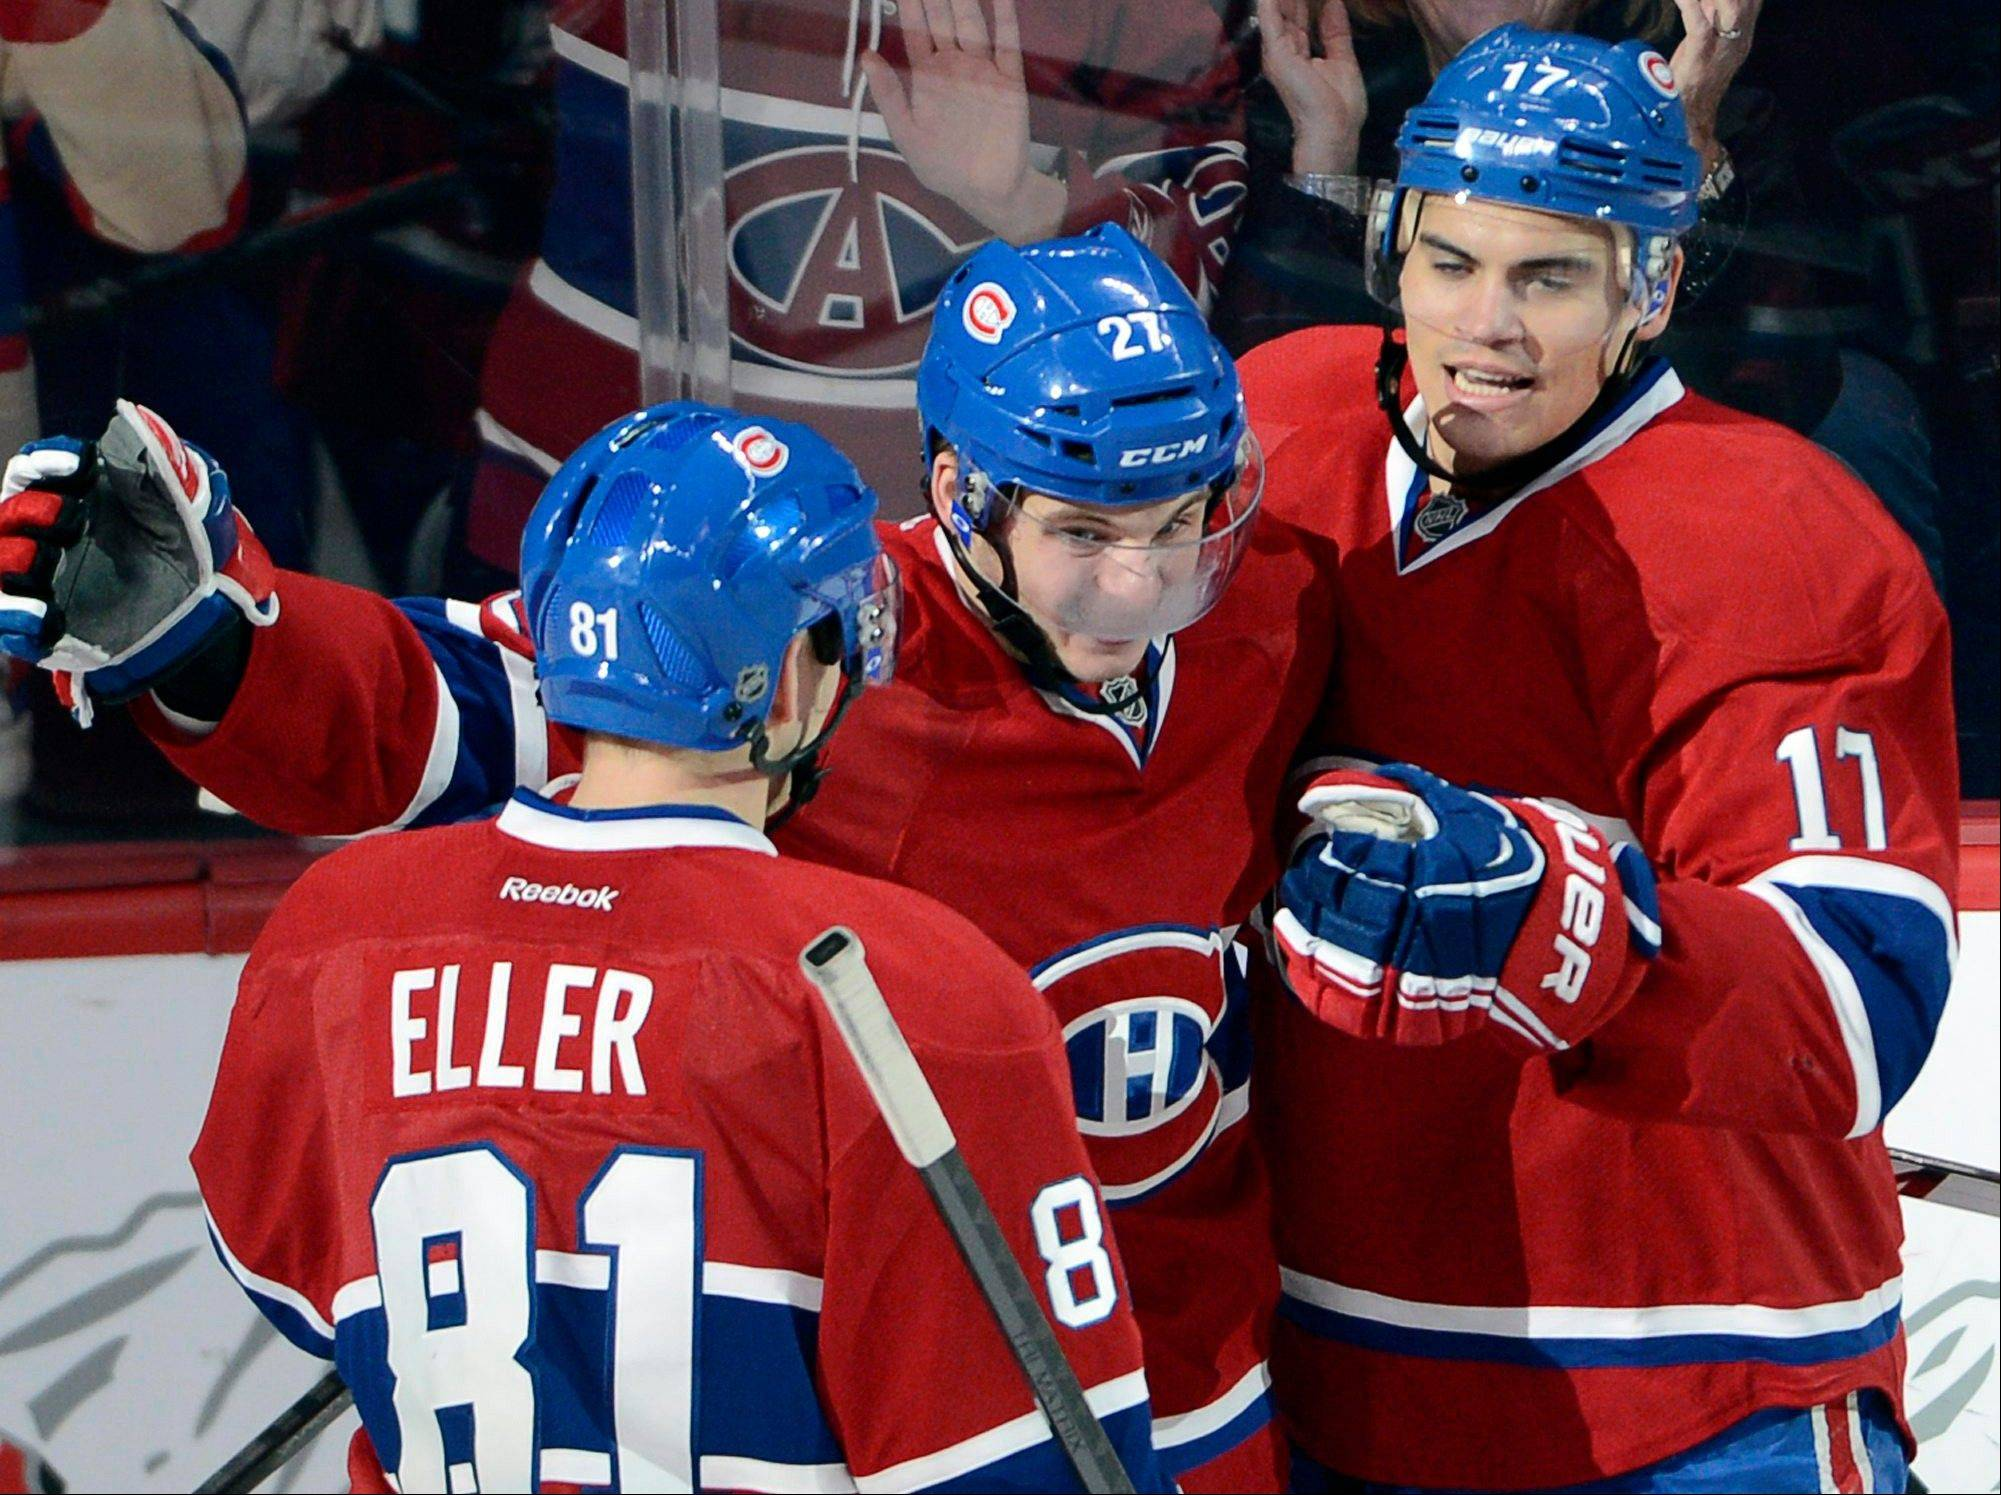 Montreal Canadiens center Alex Galchenyuk (27) celebrates with teammates Lars Eller (81) and Rene Bourque (17) after Galchenyuk scored during the third period of an NHL hockey game Monday in Montreal.